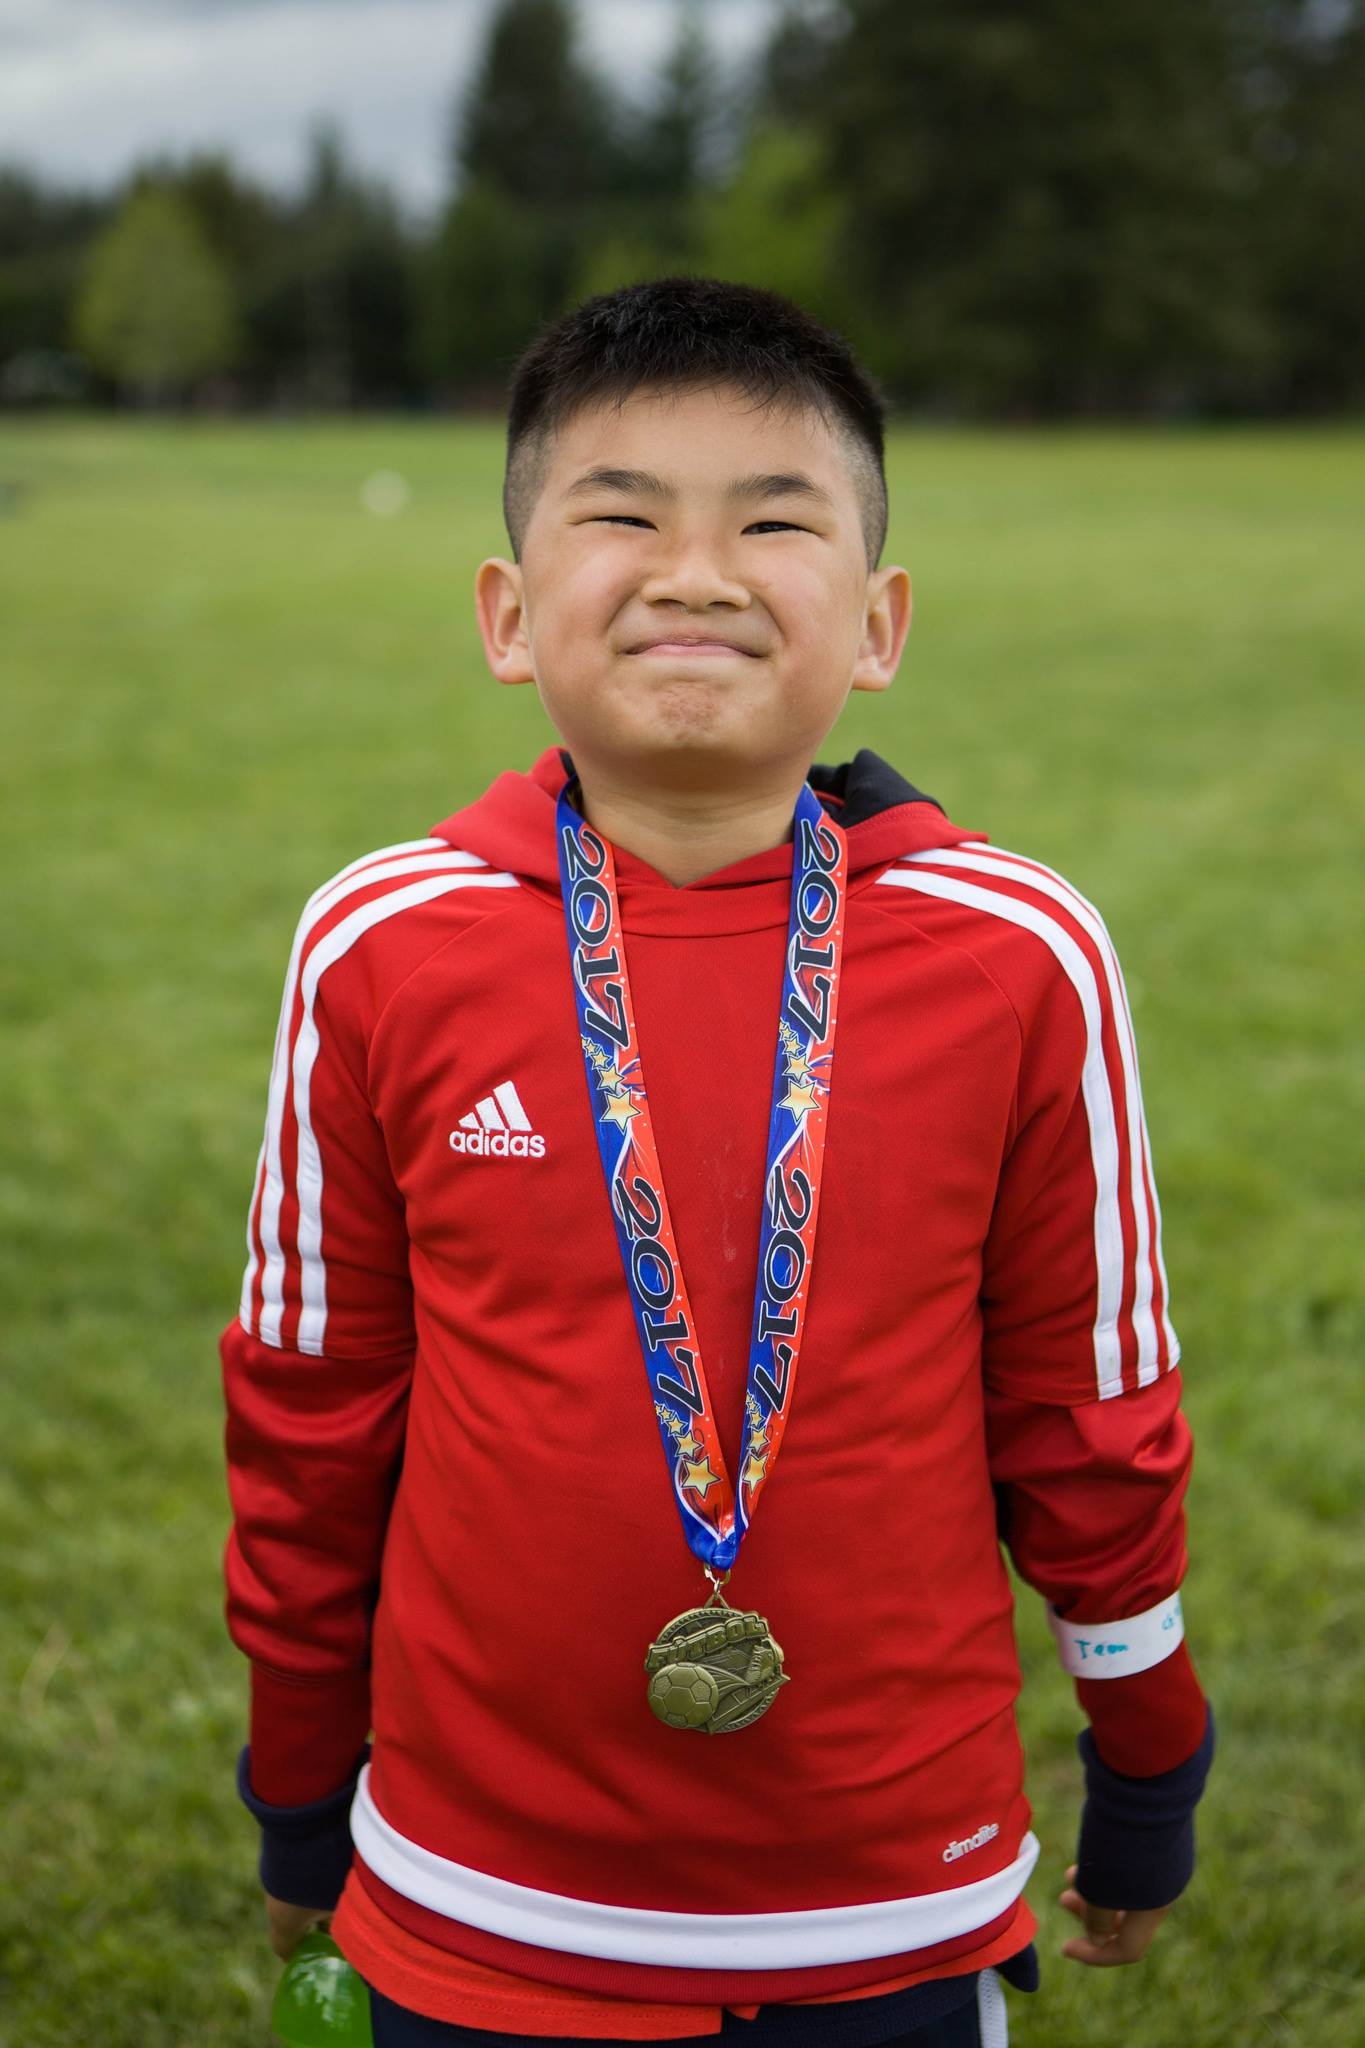 Community Cup - Proud of his medal!